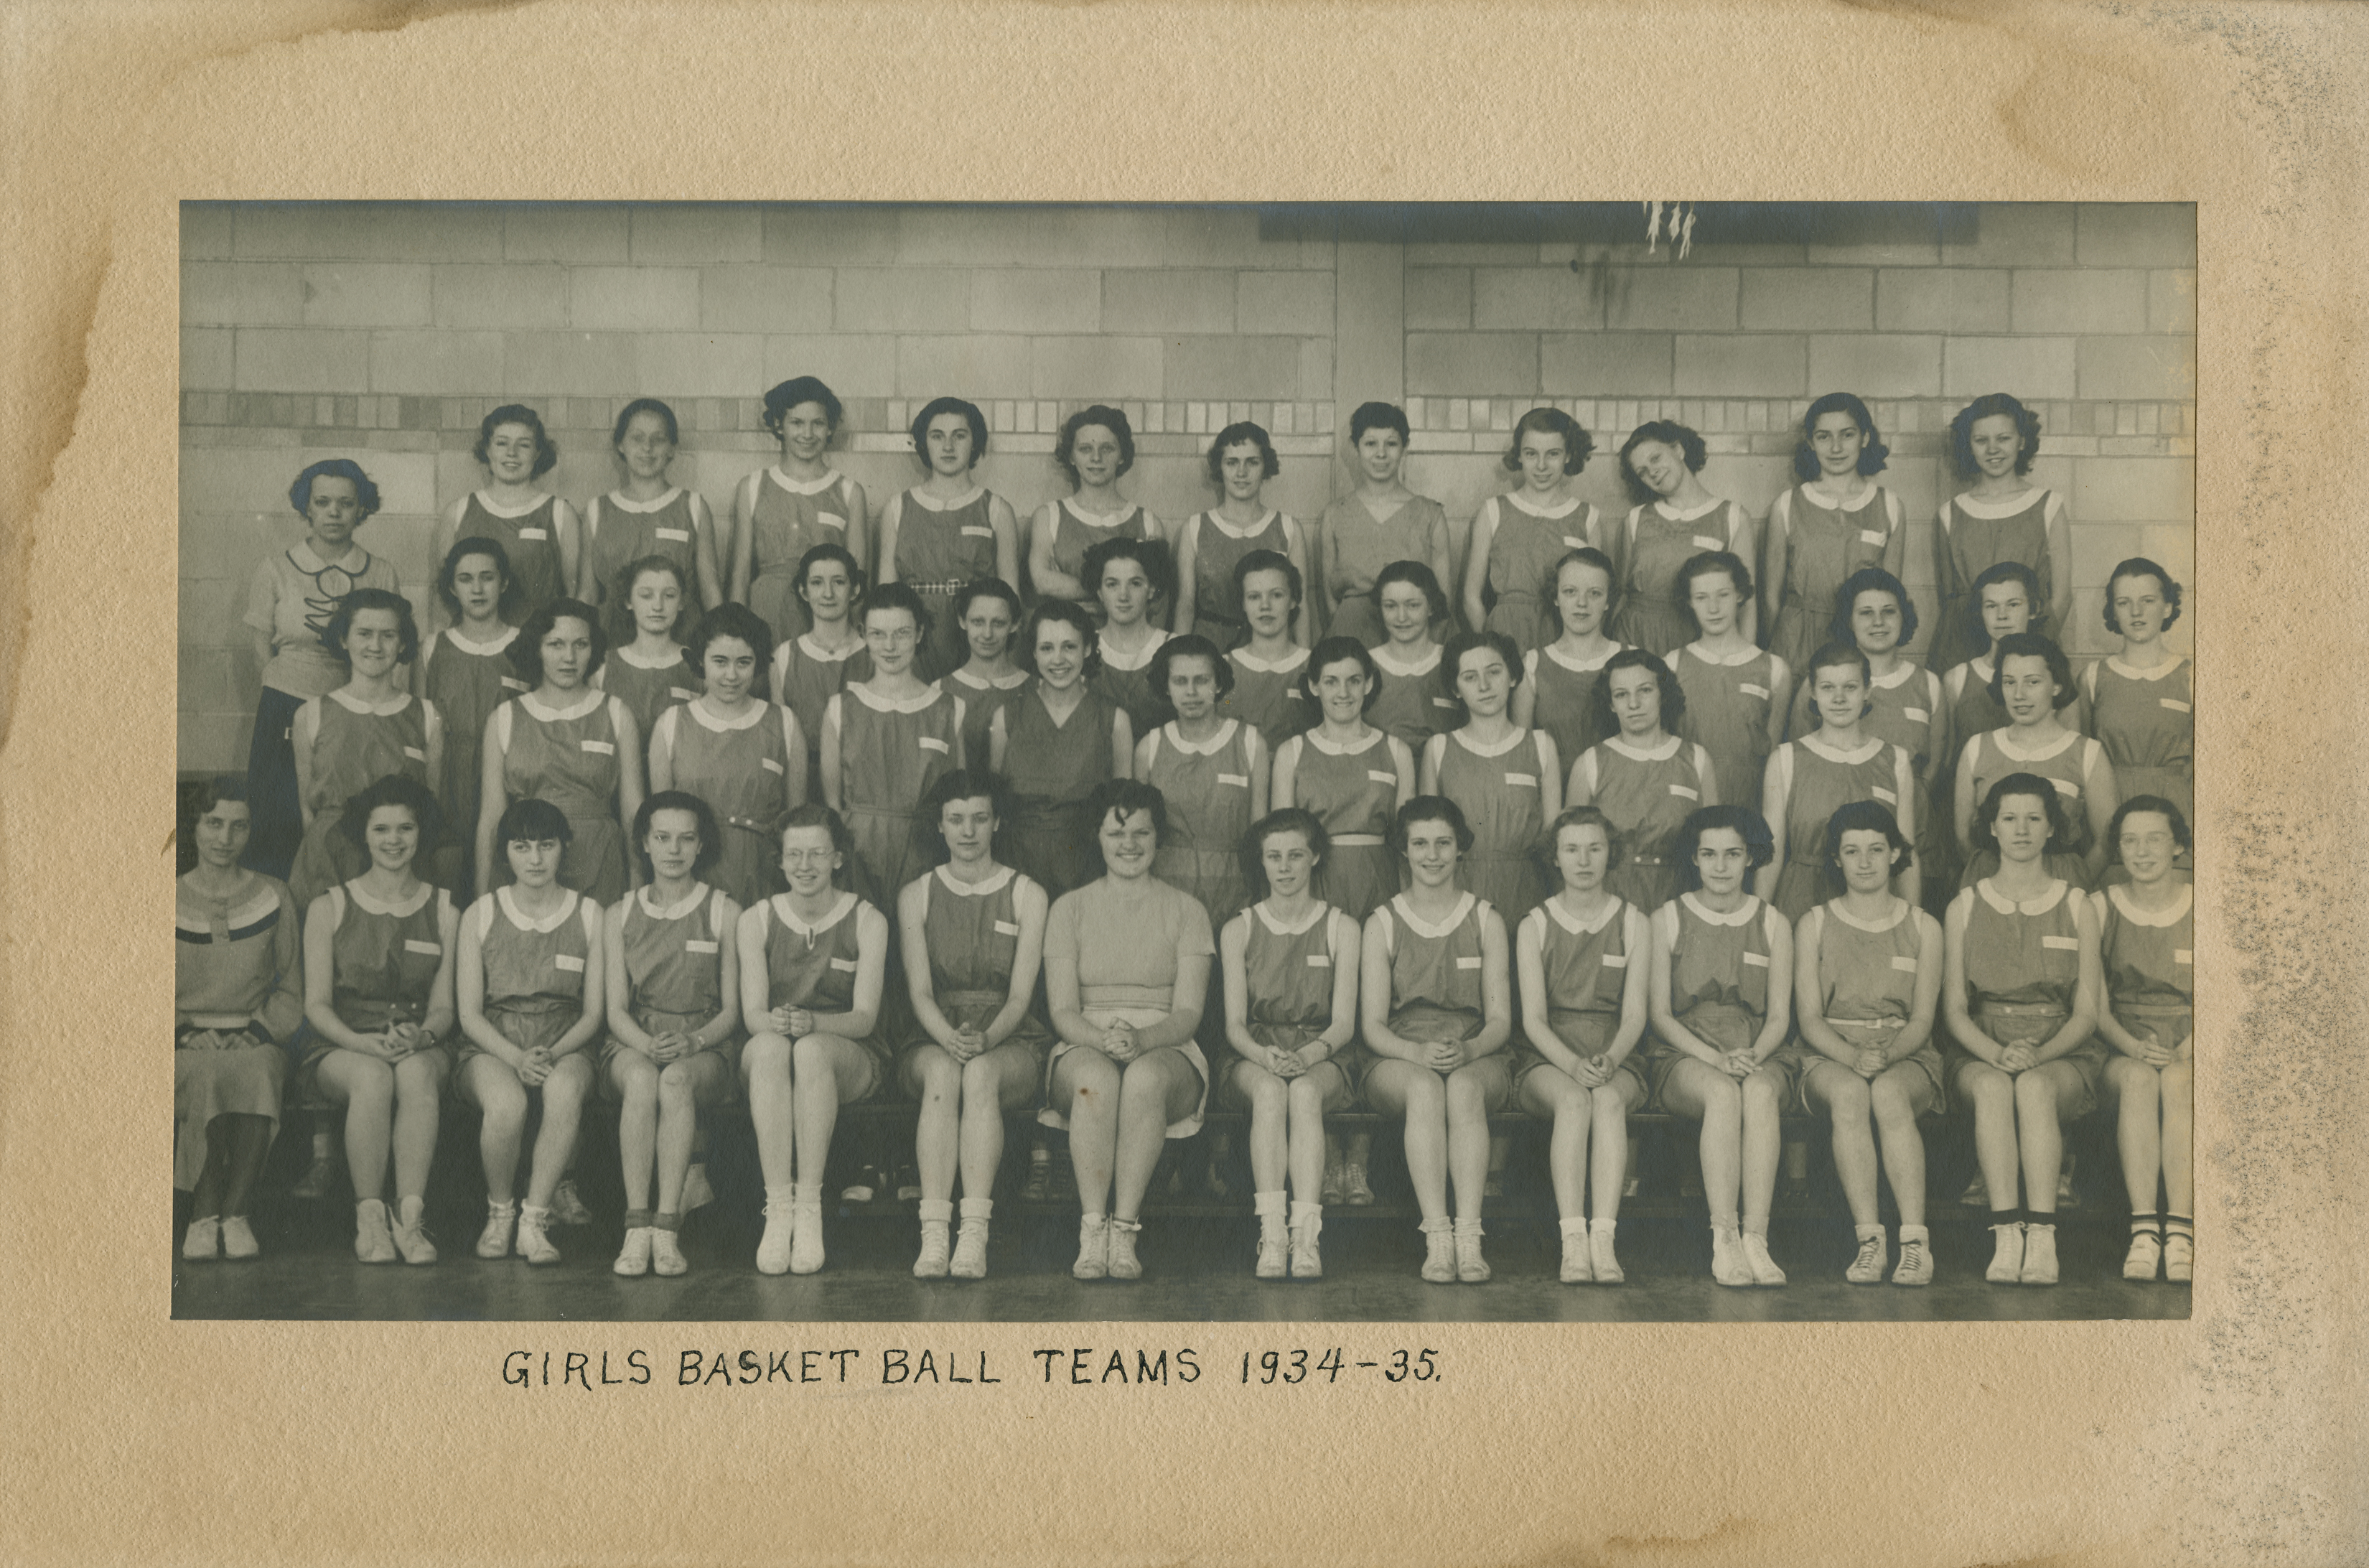 Girls Basketball Teams 1934-35